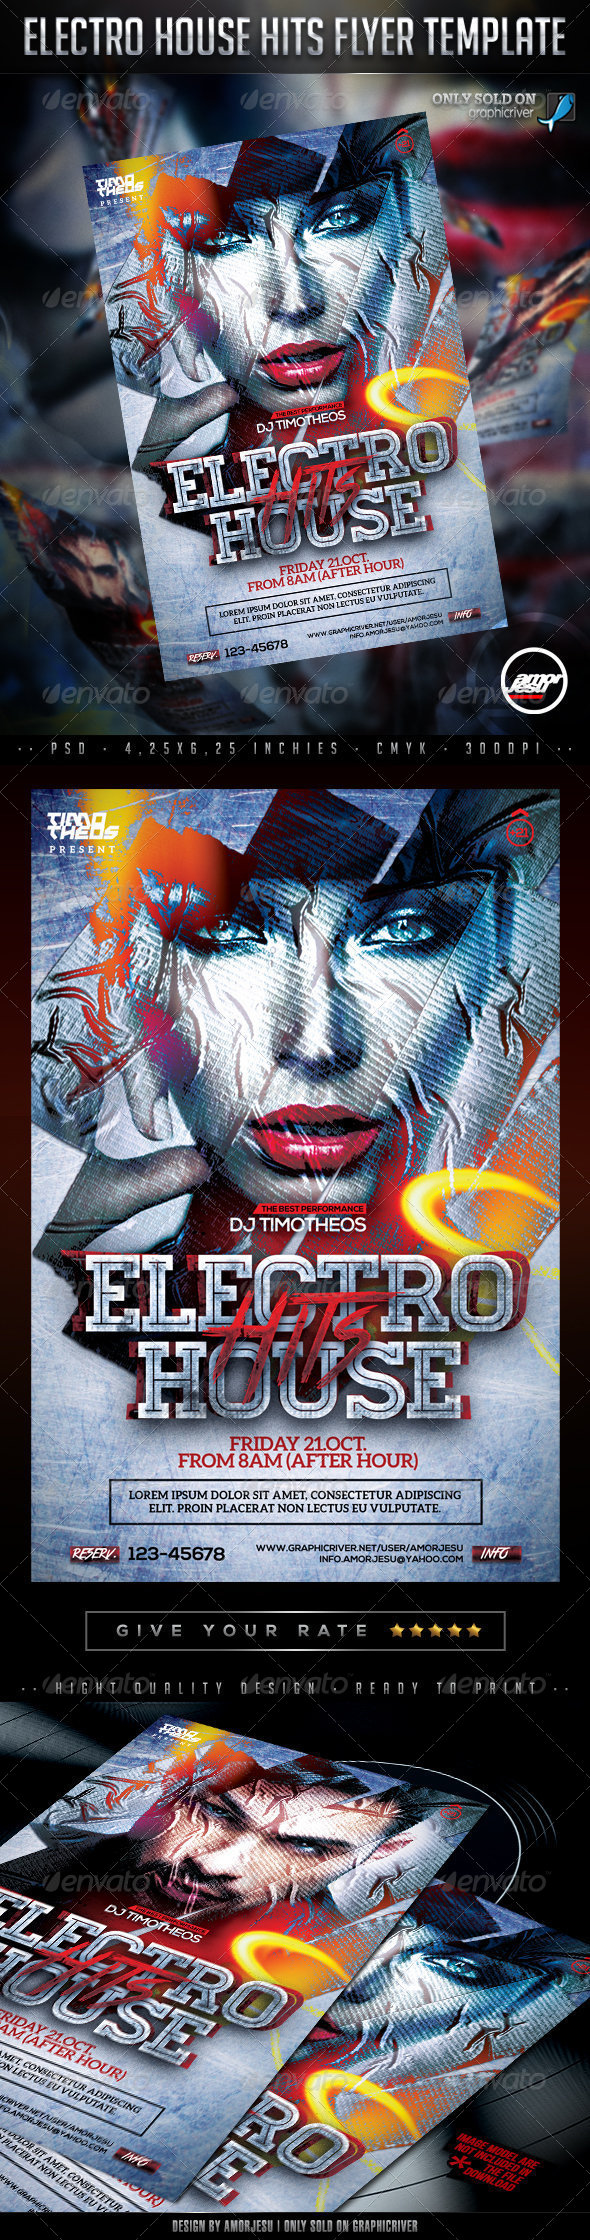 Electro House Hits Flyer Template - Clubs & Parties Events